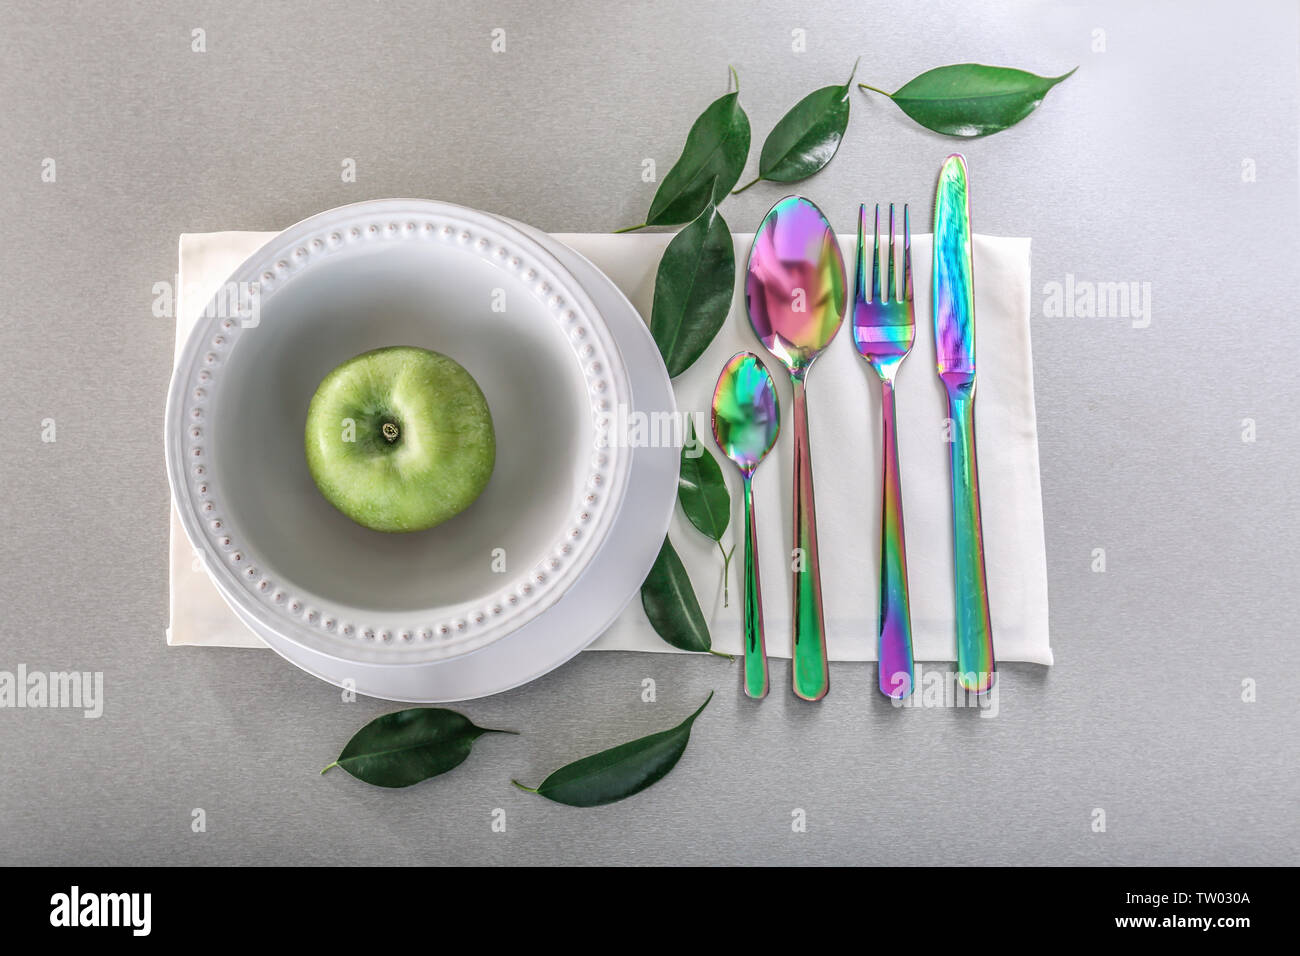 Cutlery set with plates and green apple on gray background - Stock Image